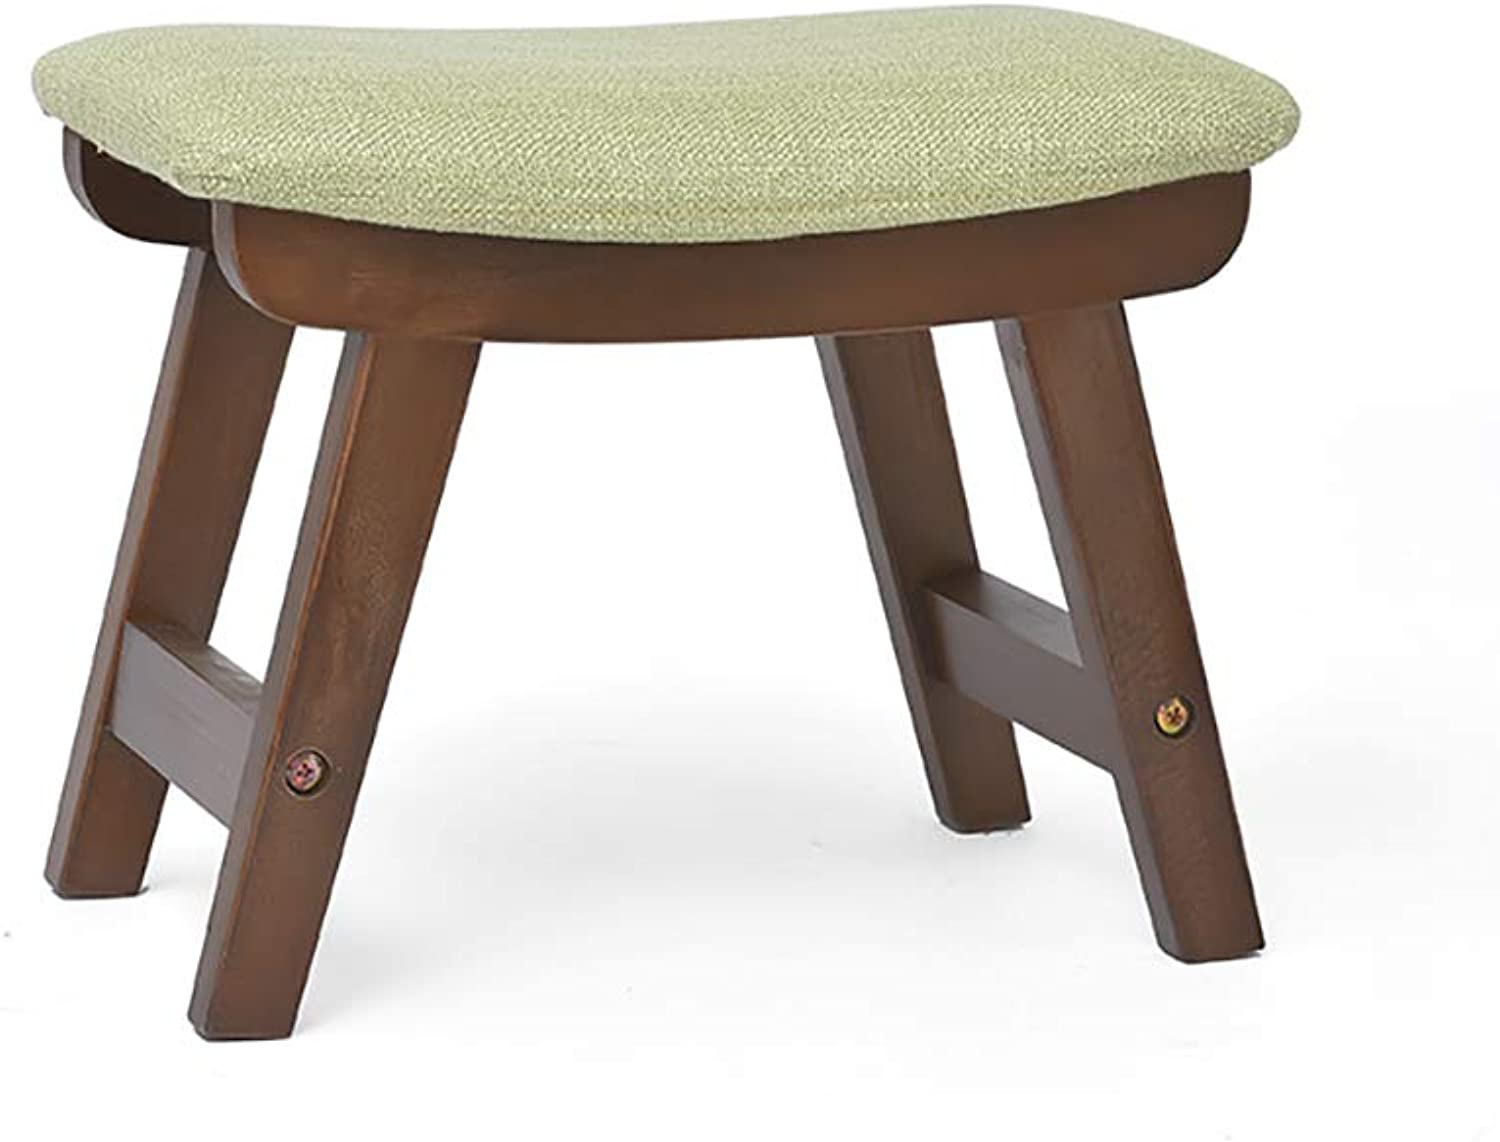 European Chair Solid Wood shoes, Stool, Living Room, Footstool, Home Fabric, Stool, Fashion, Adult Stool (color   B)